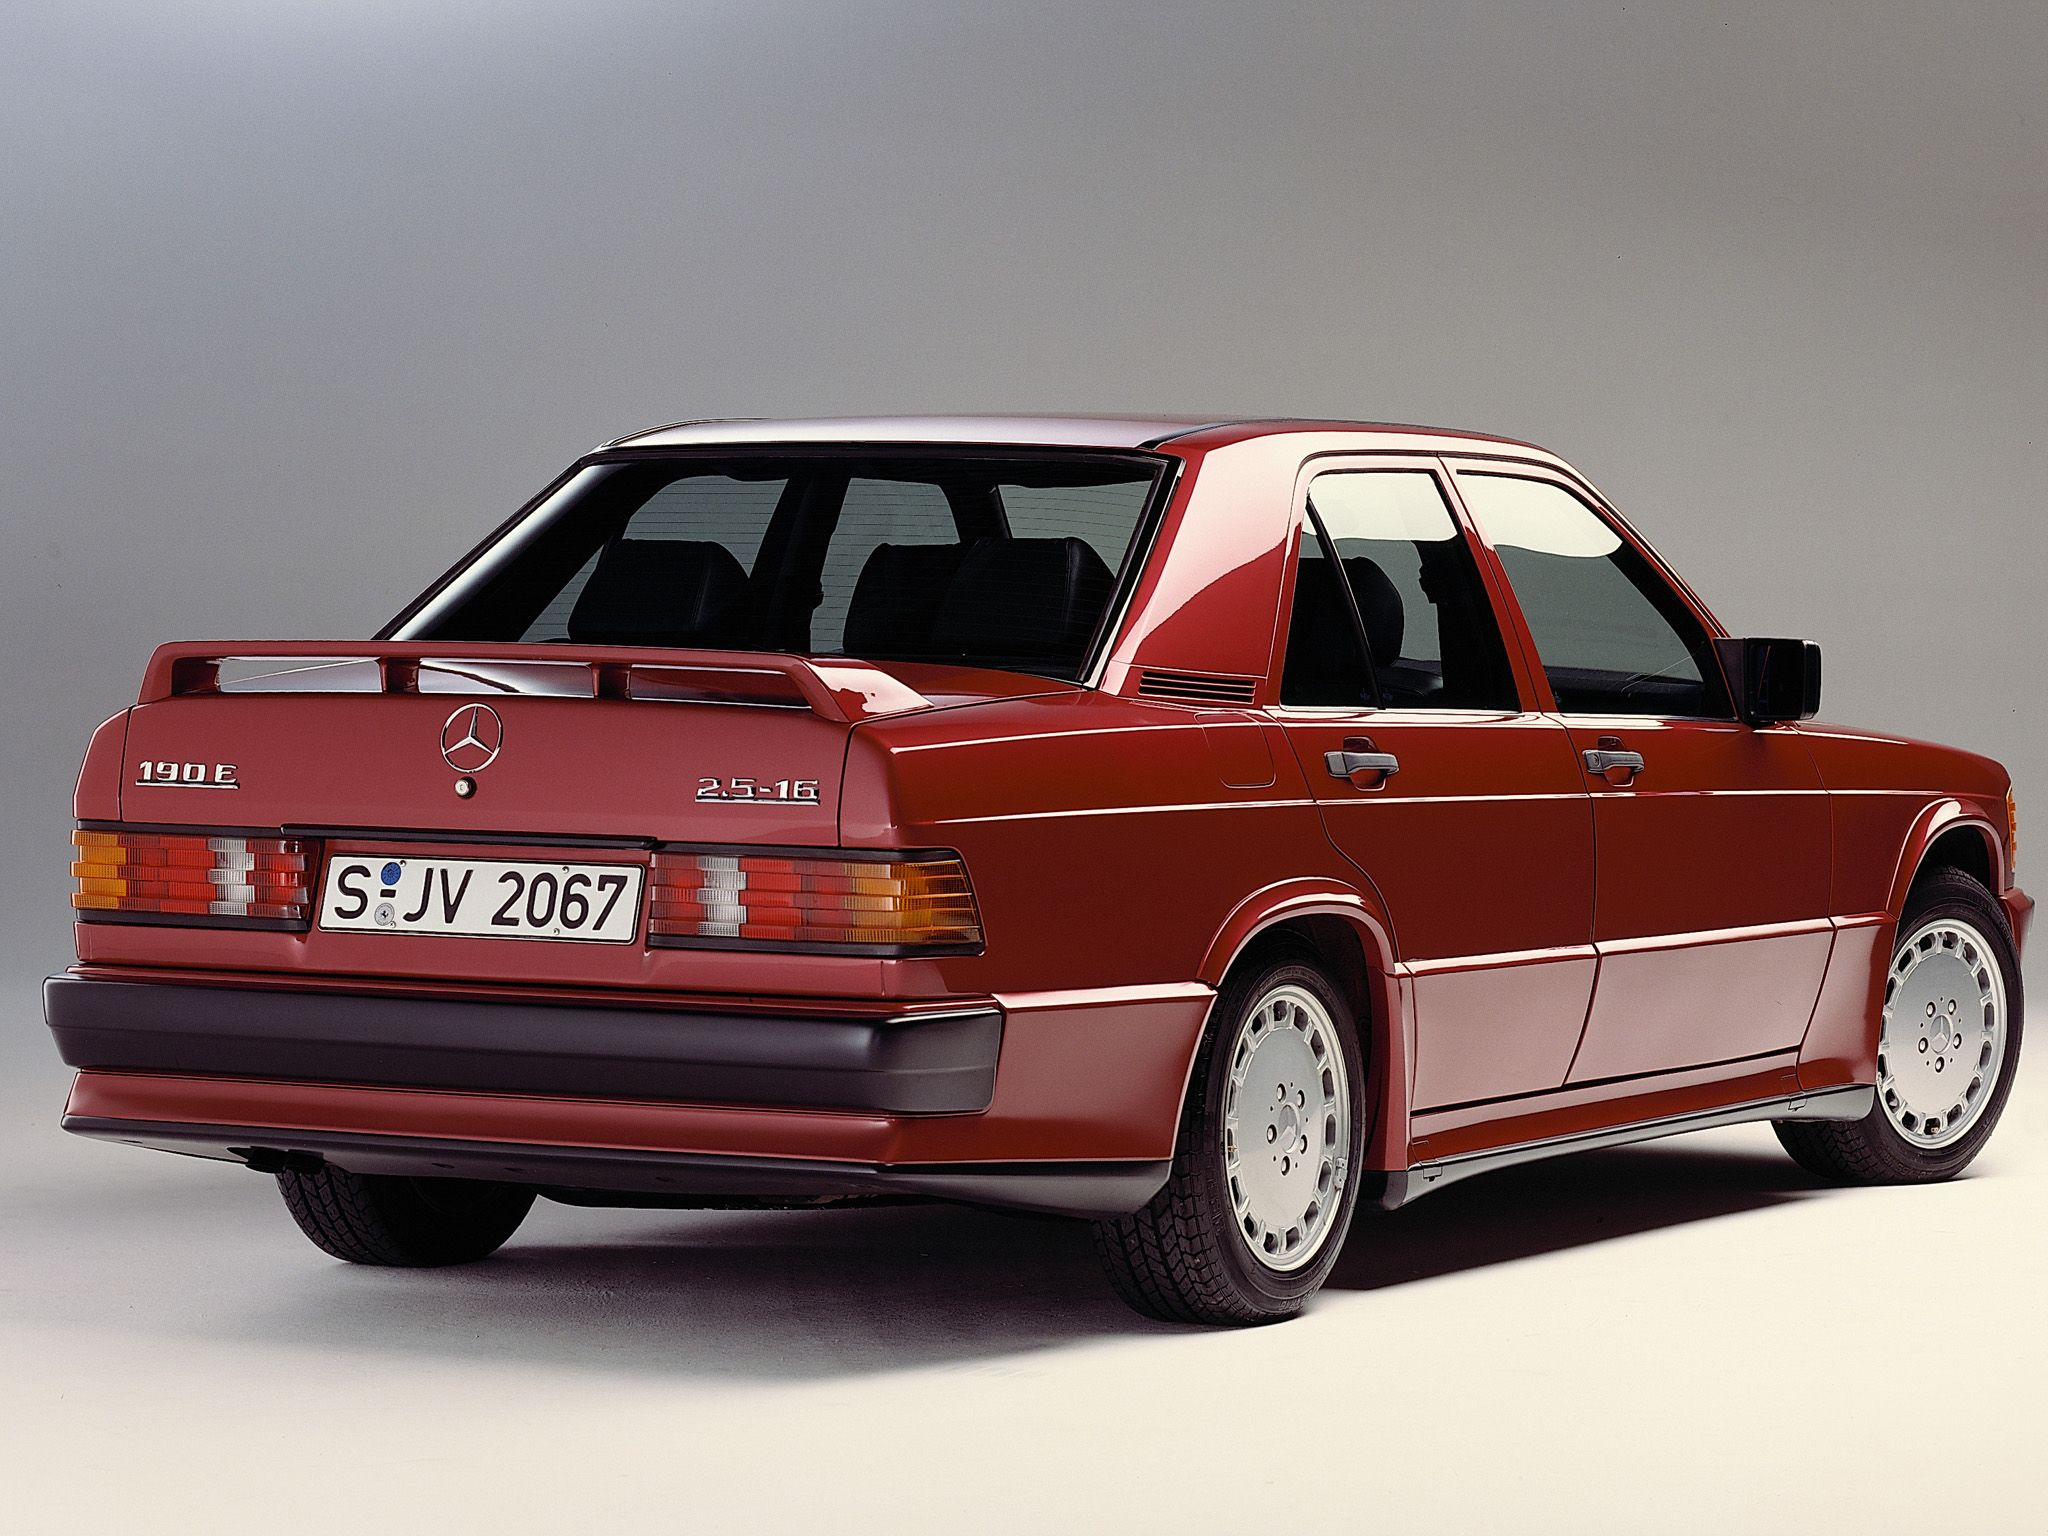 Mercedes benz 190 e 2 5 16 quotes fun cars pinterest for Mercedes benz vehicle locator